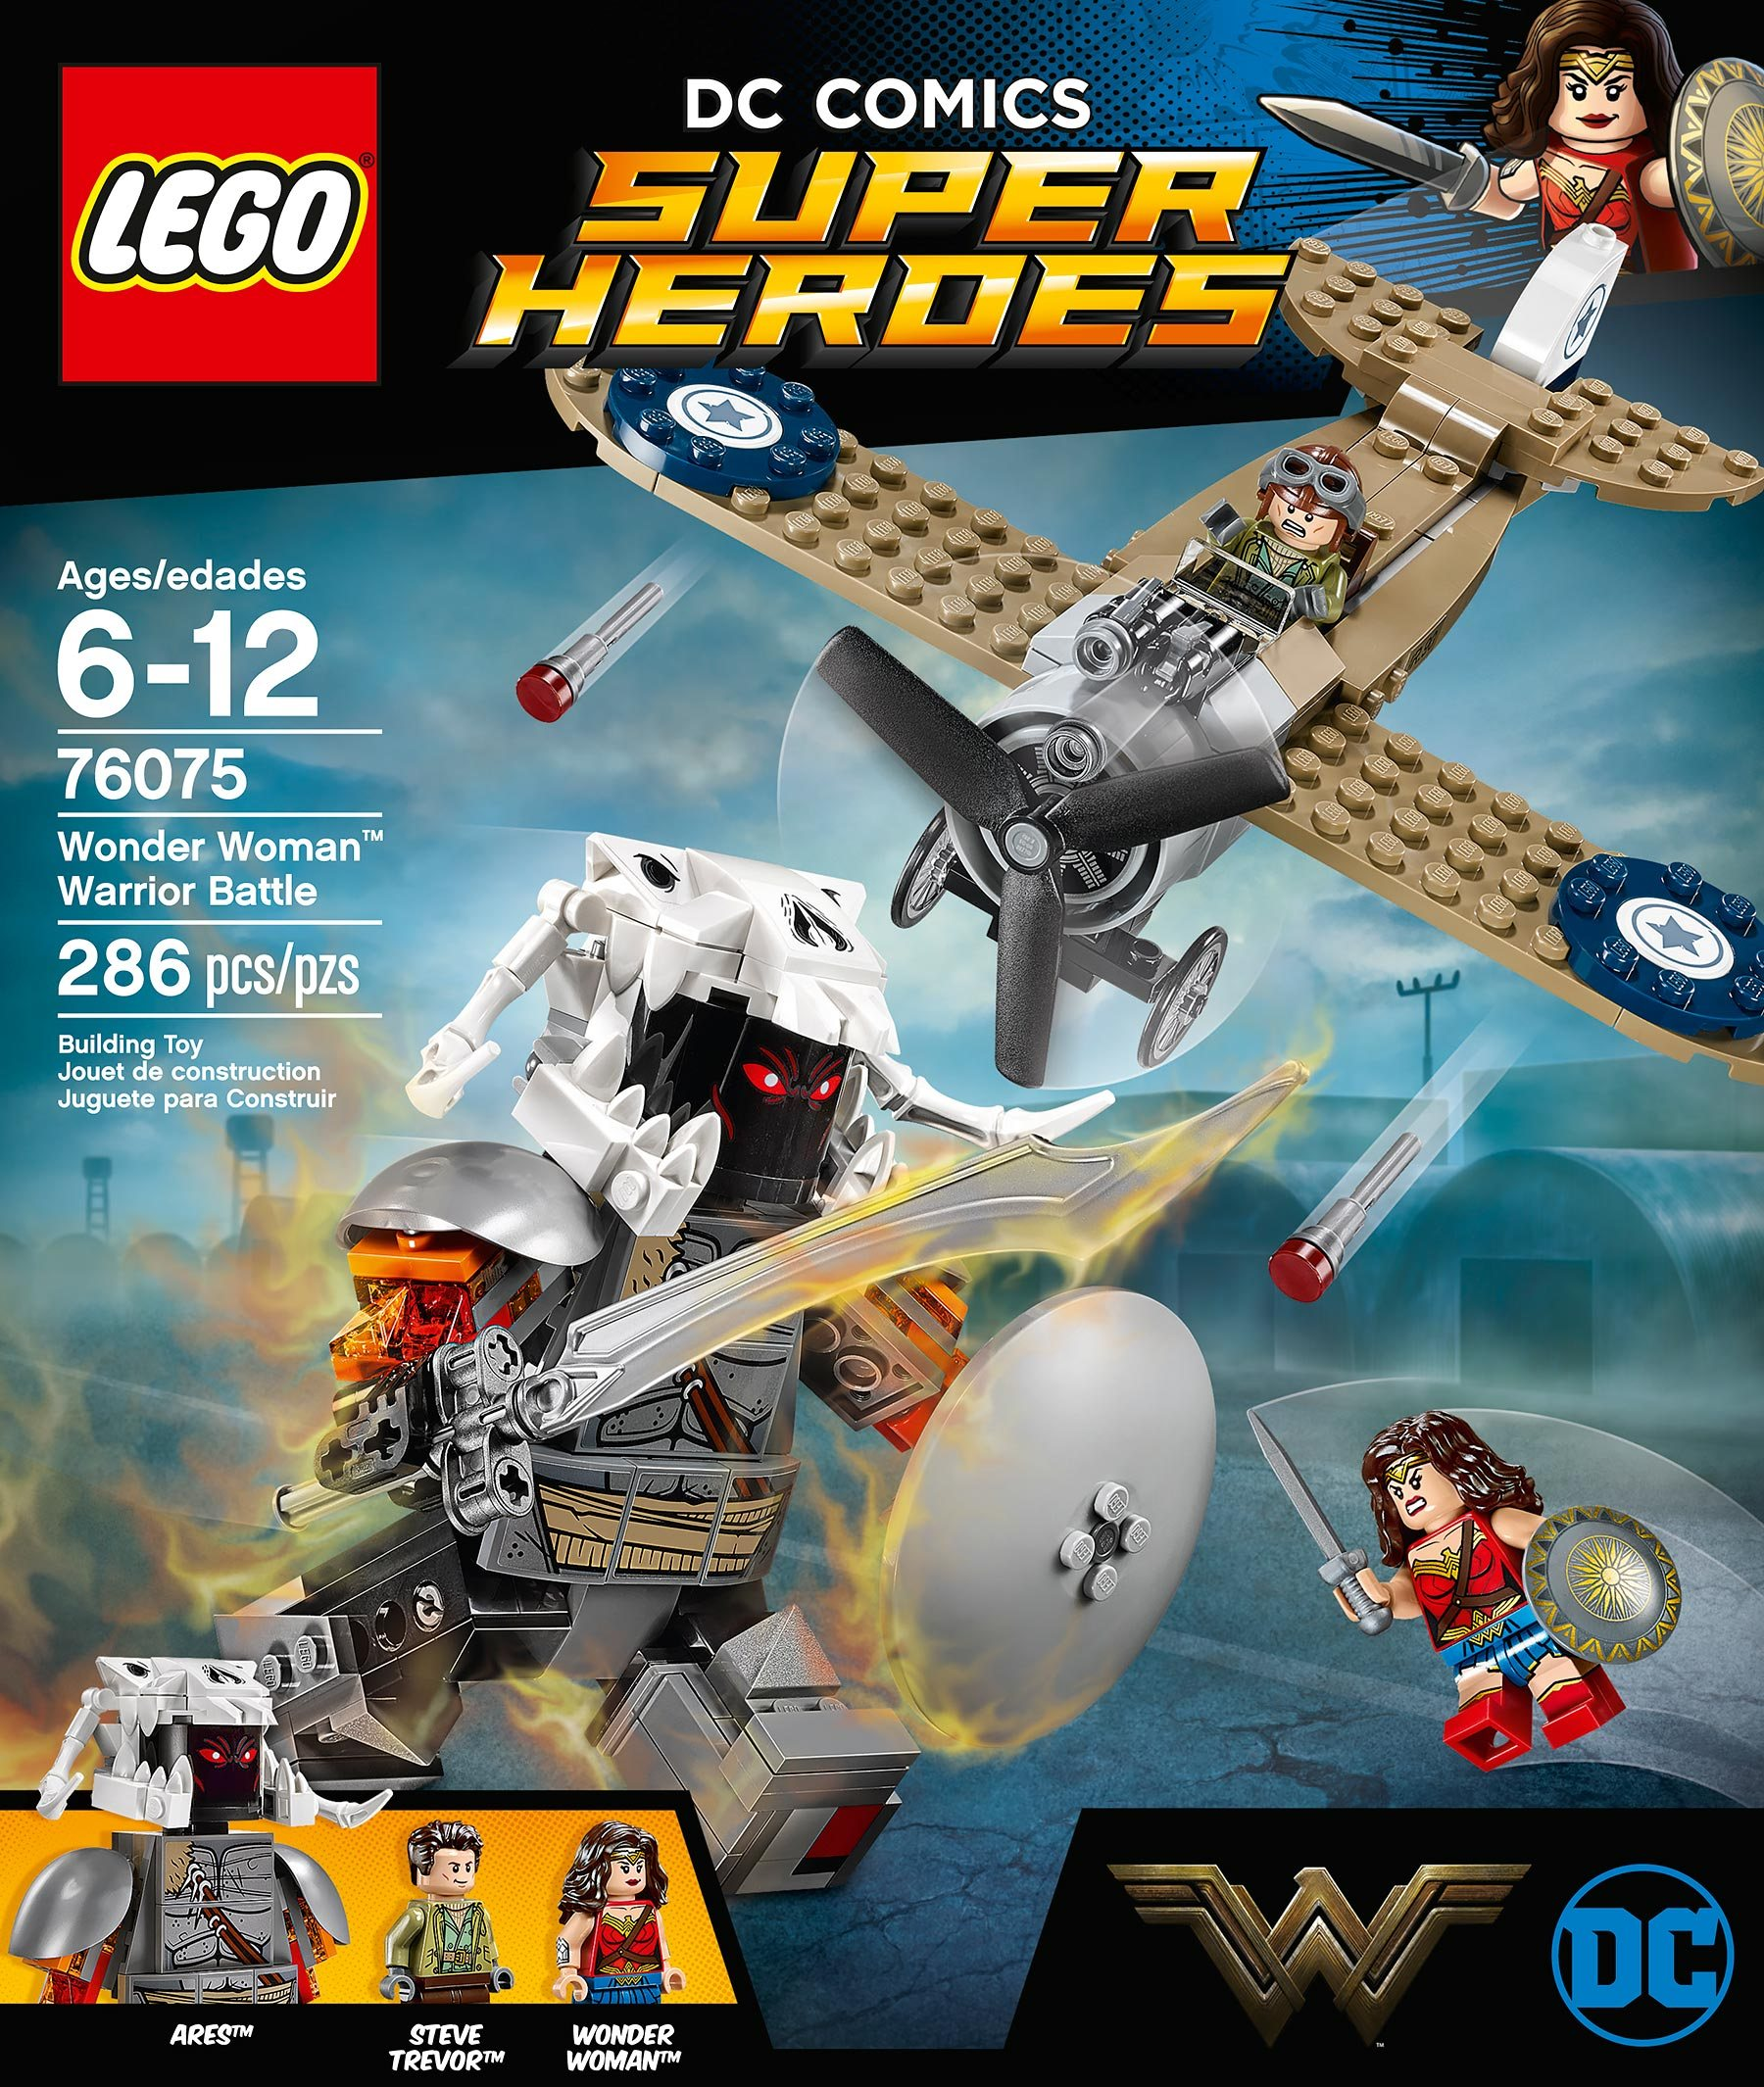 LEGO-76075-Wonder-Woman-Warrior-Battle-B